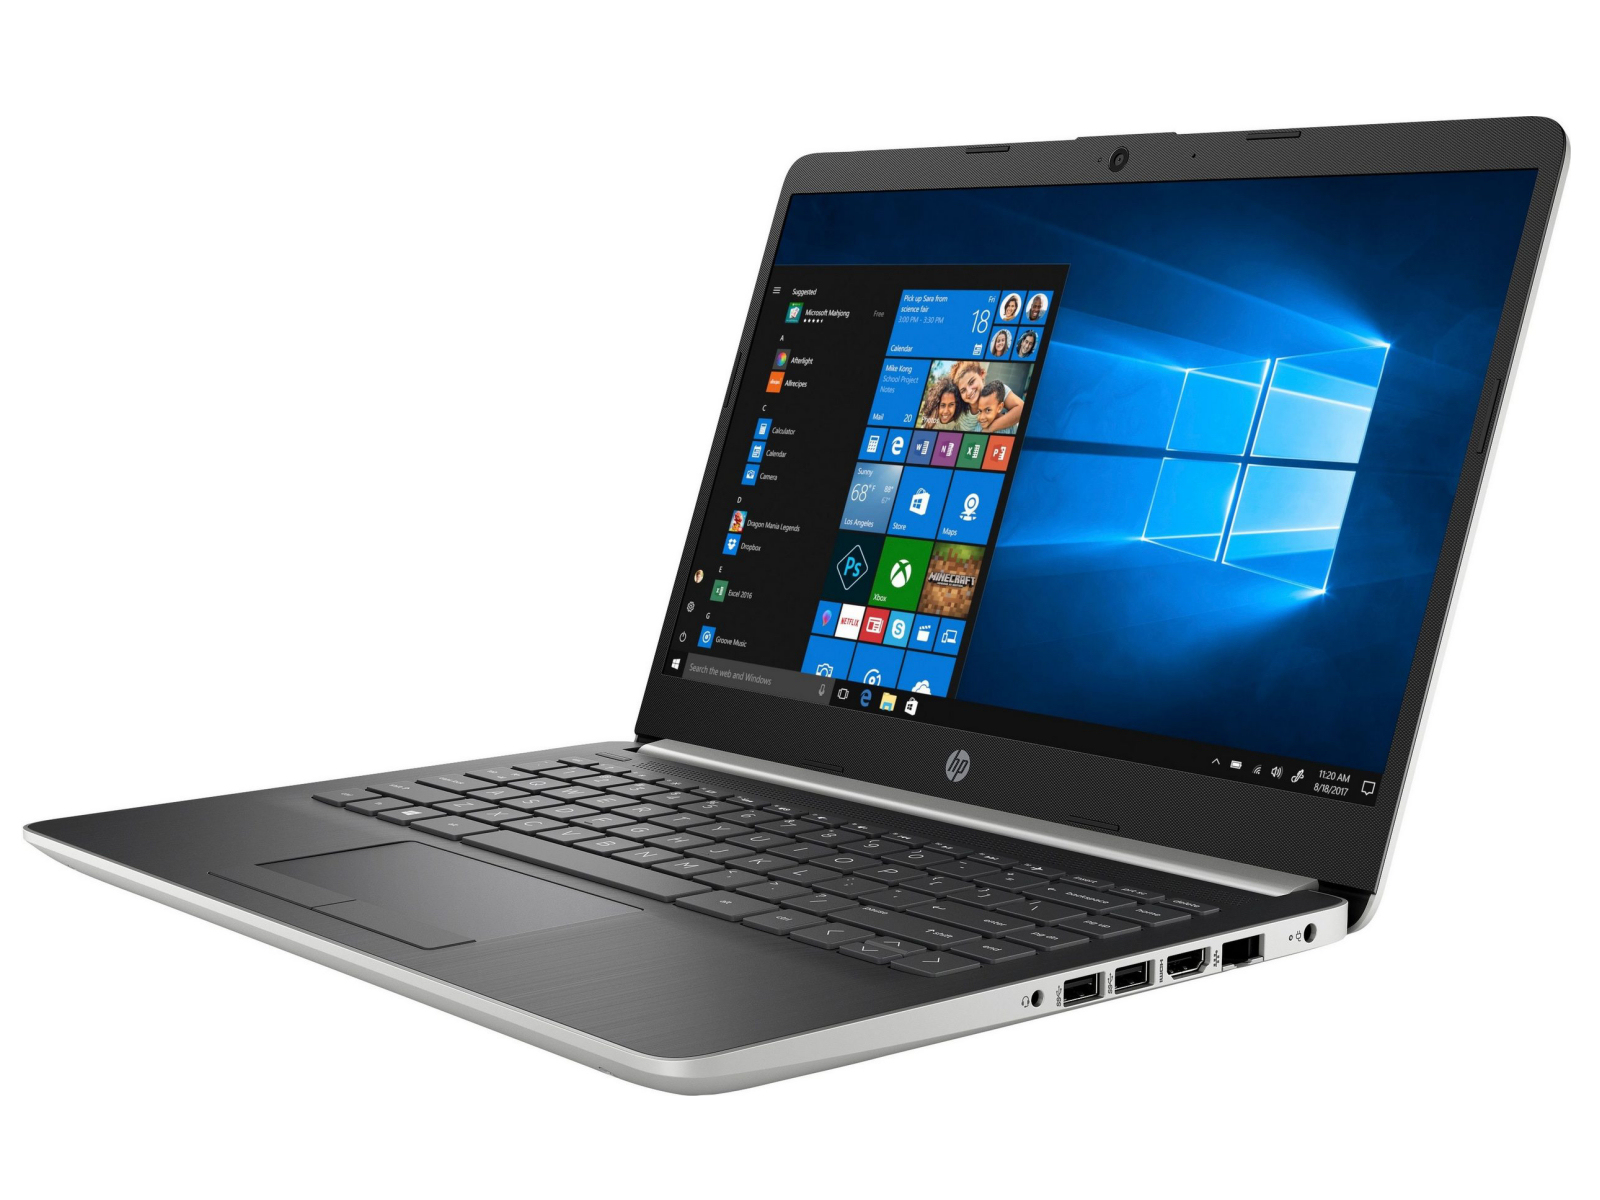 Review of the HP 14: Ryzen 7 3700U-based Laptop with an